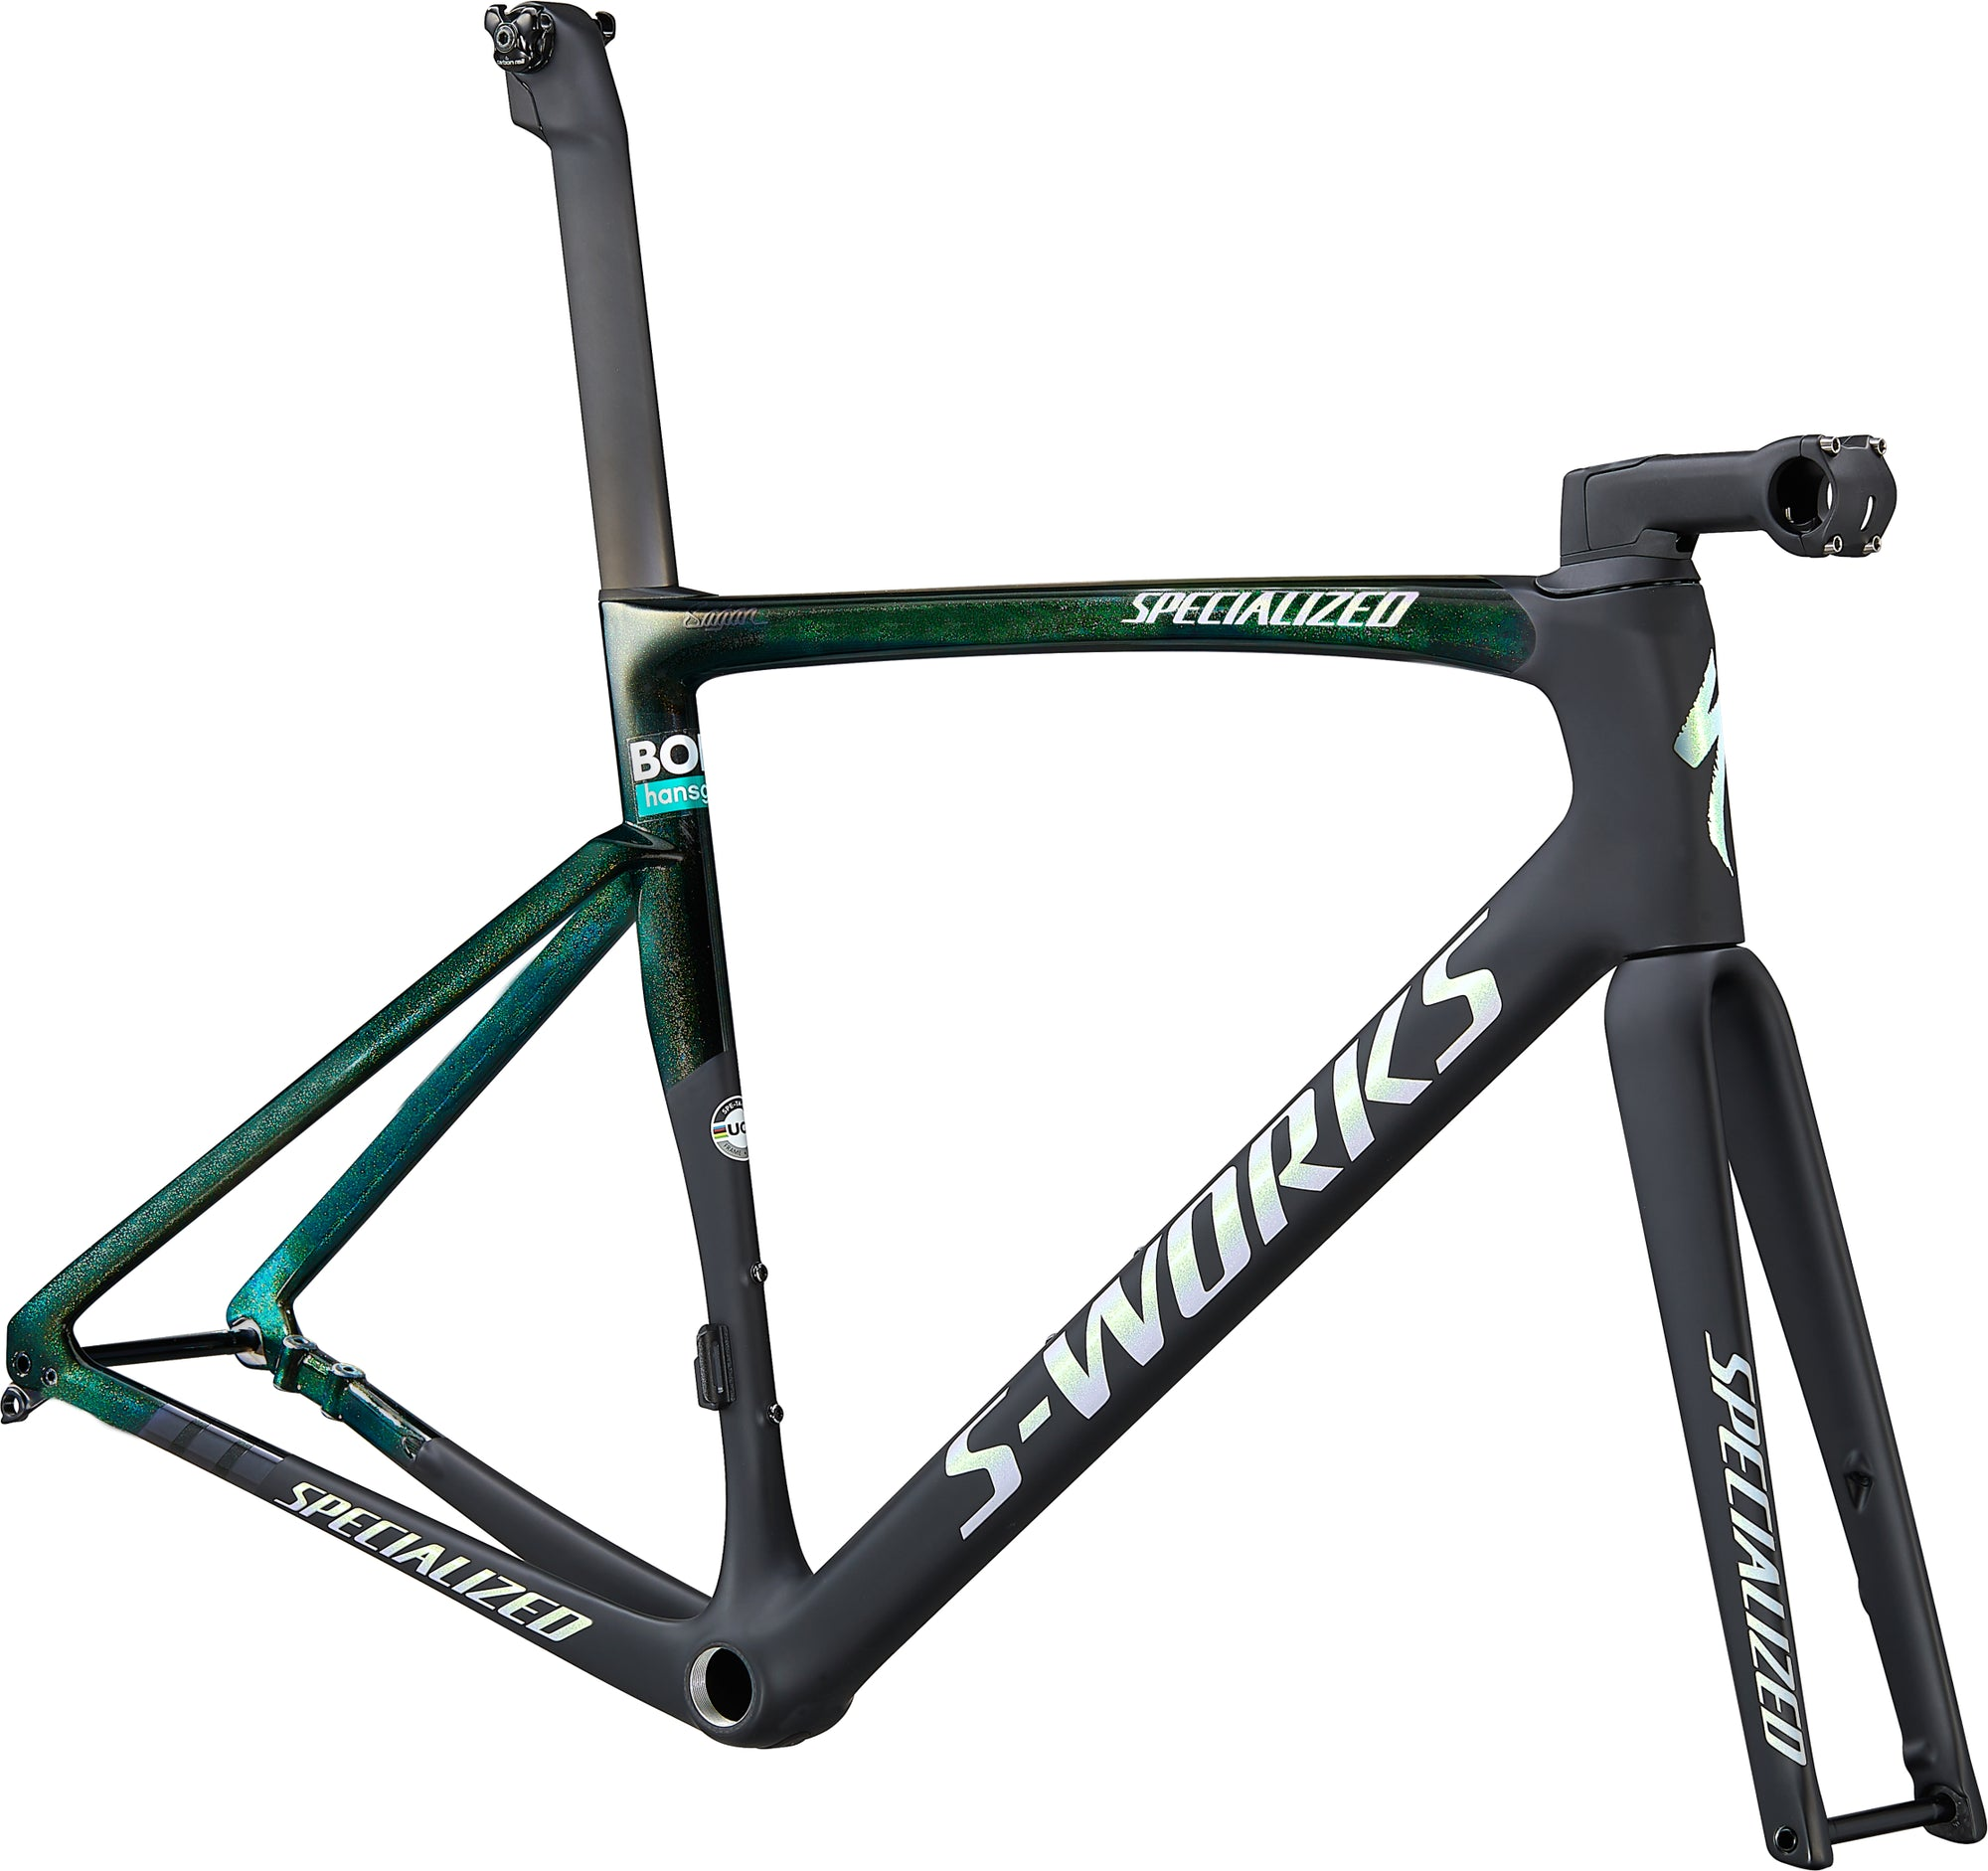 S-Works Tarmac SL7 Frameset - Sagan Collection